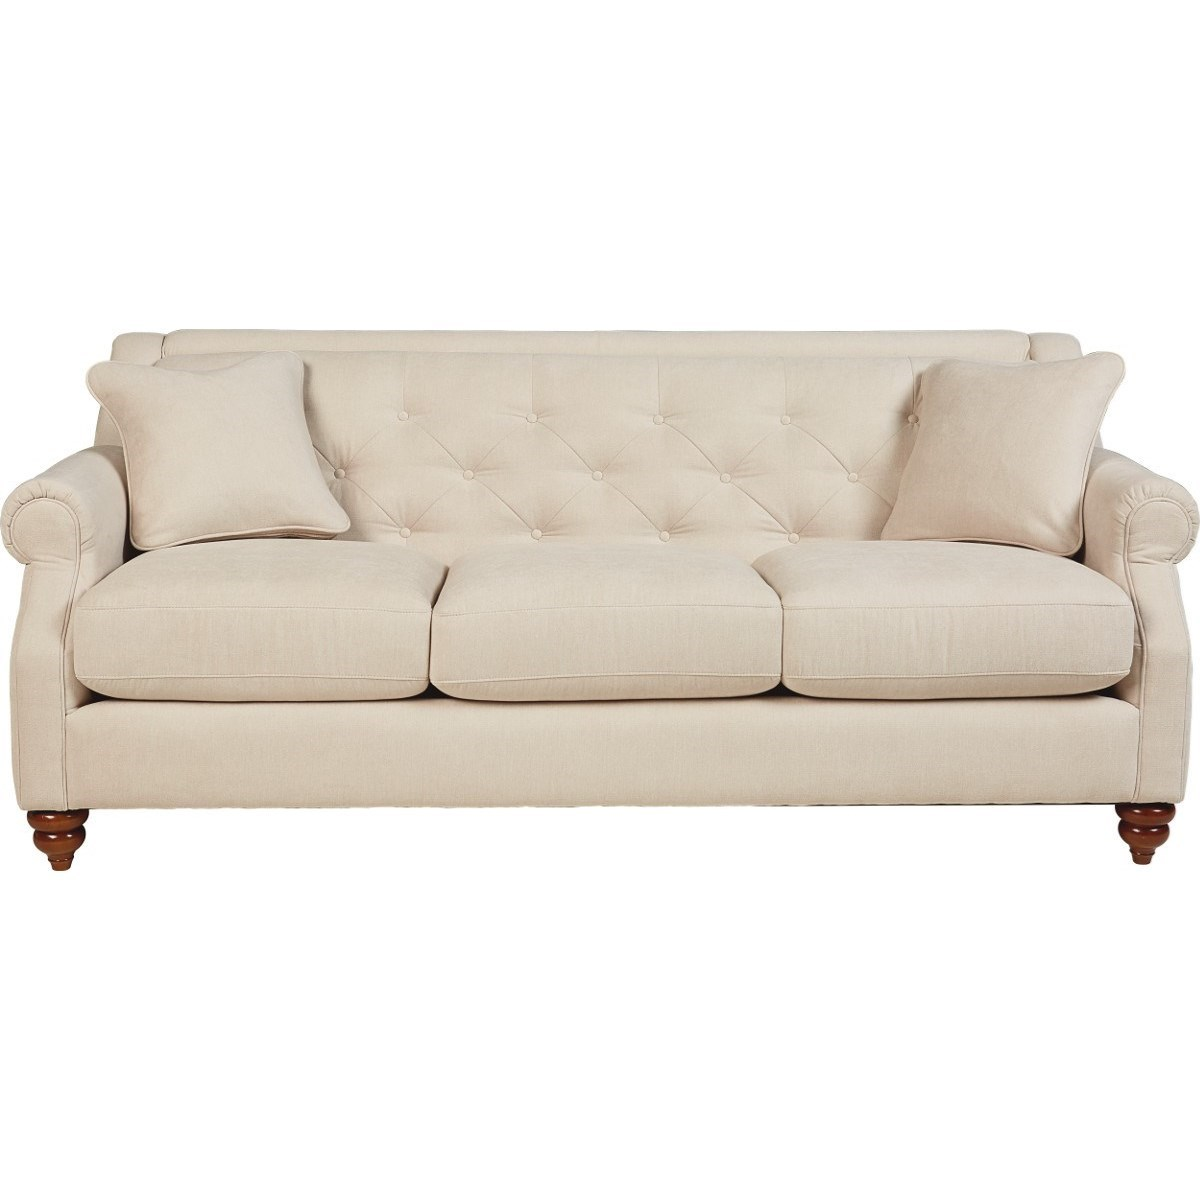 Traditional Sofa with Tufted Seatback